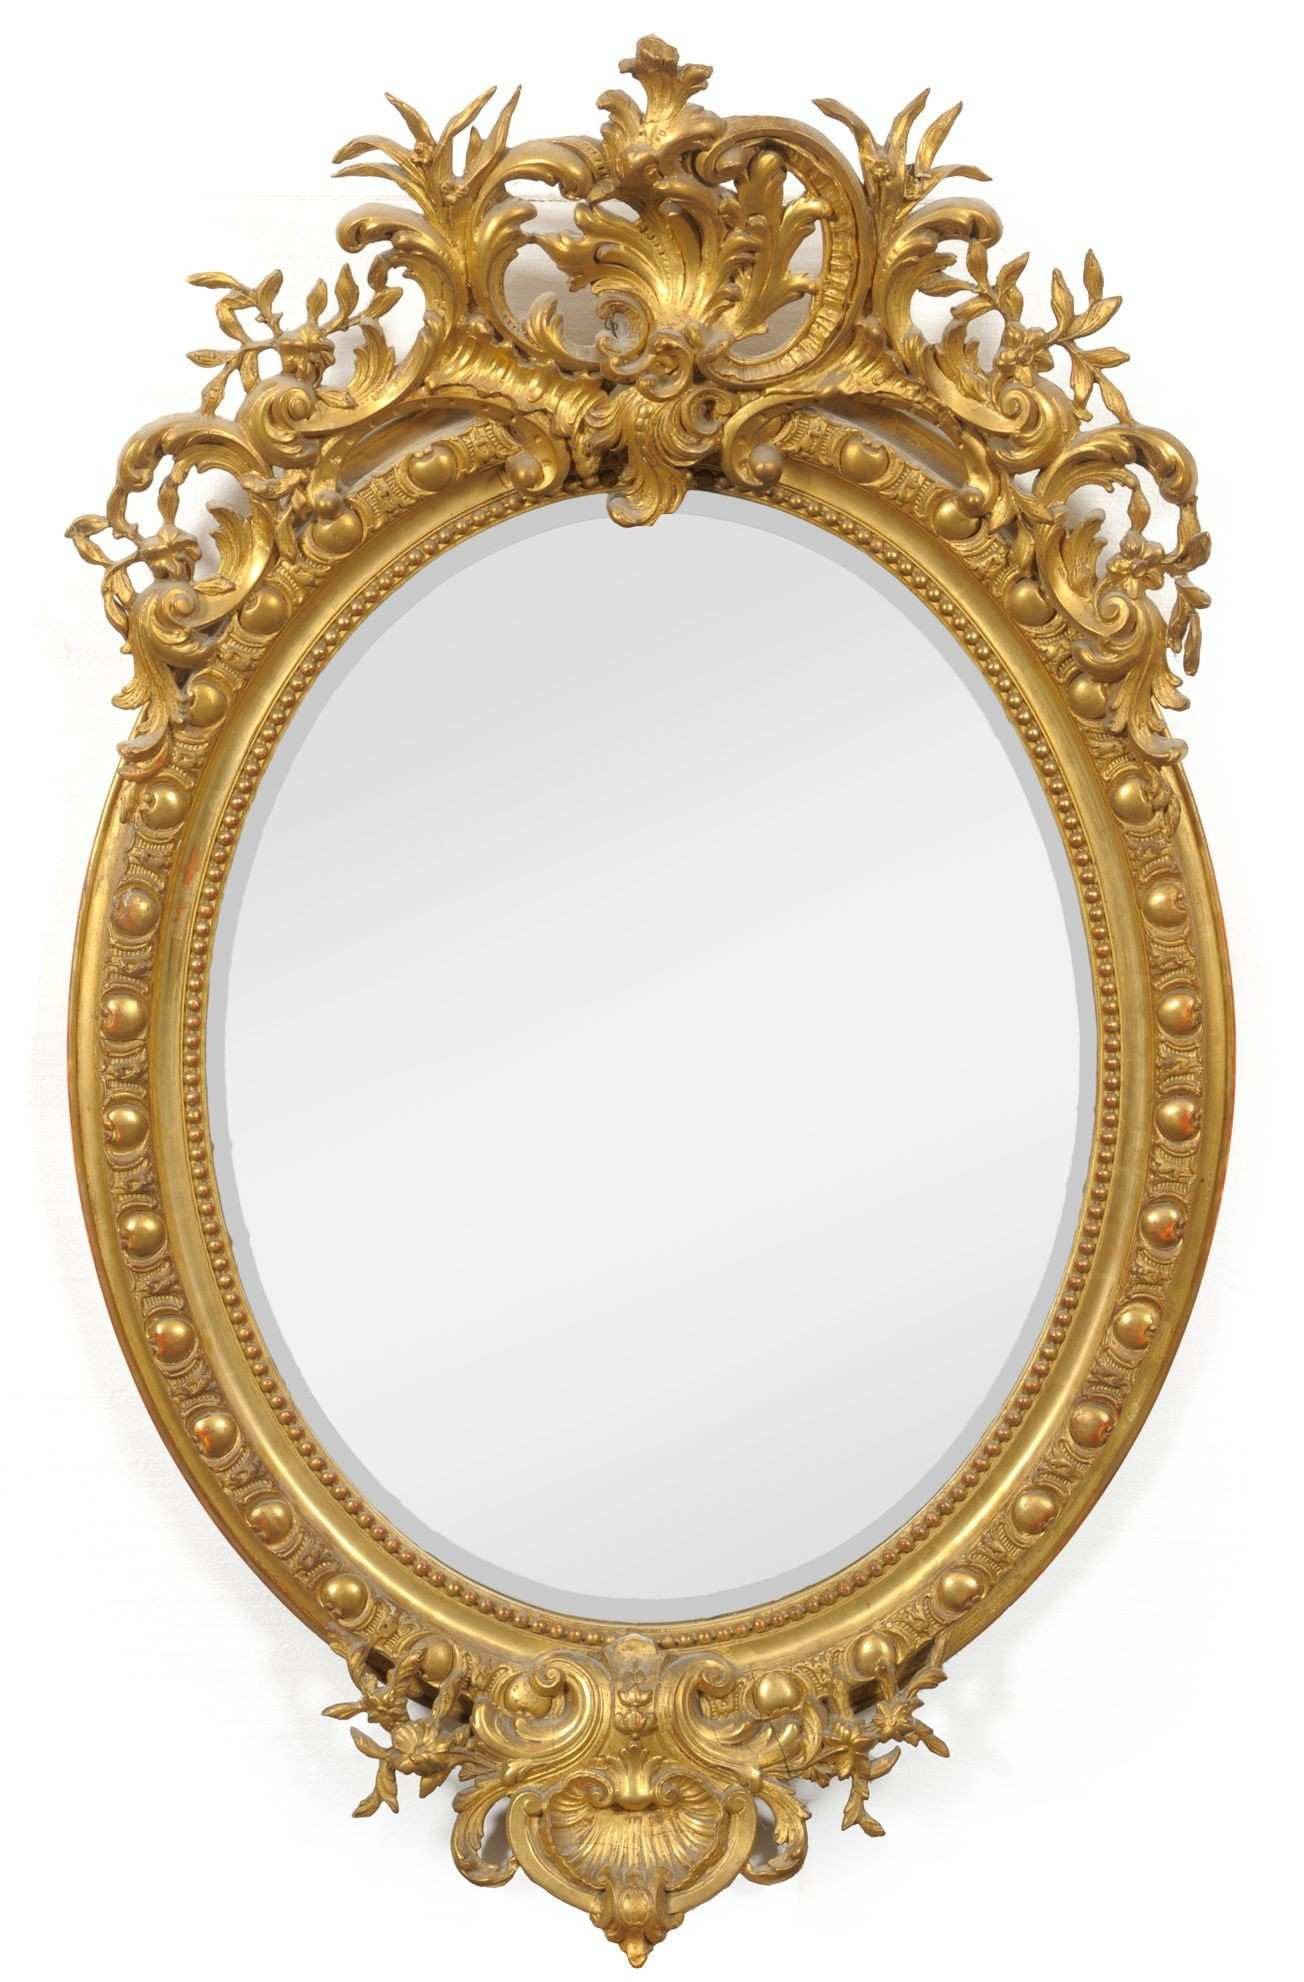 Tennants Auctioneers An Early Victorian Gilt and Gesso Oval Wall